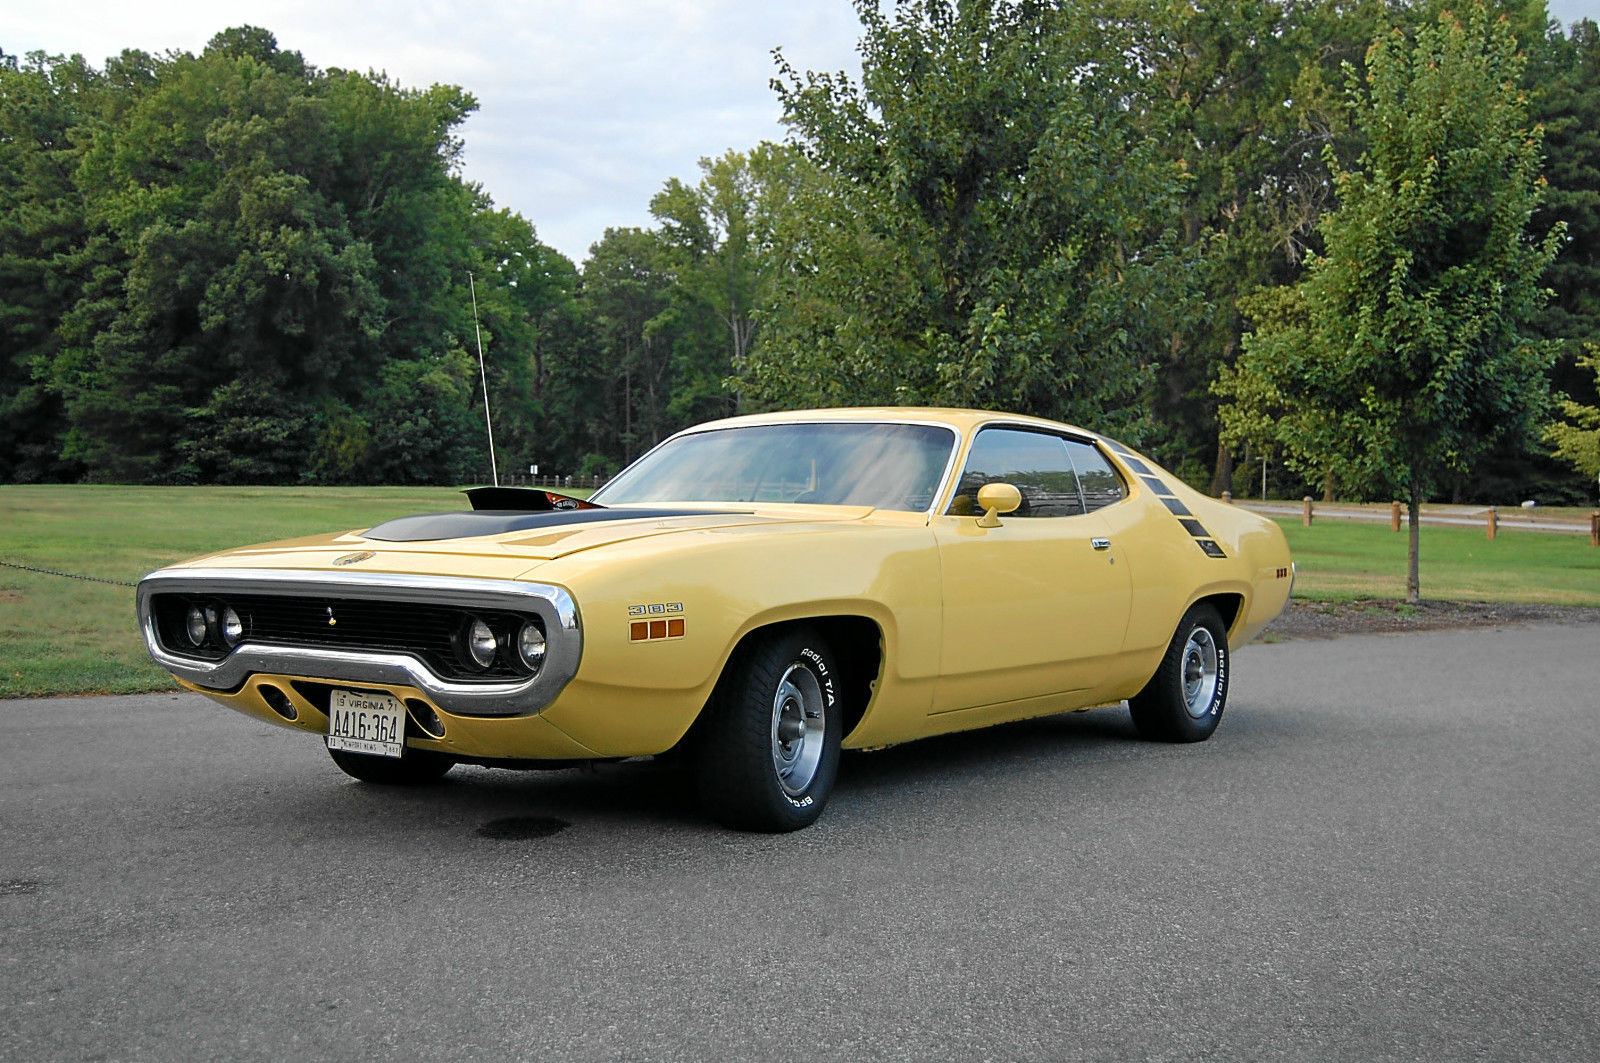 1971 Plymouth Road Runner-12345234